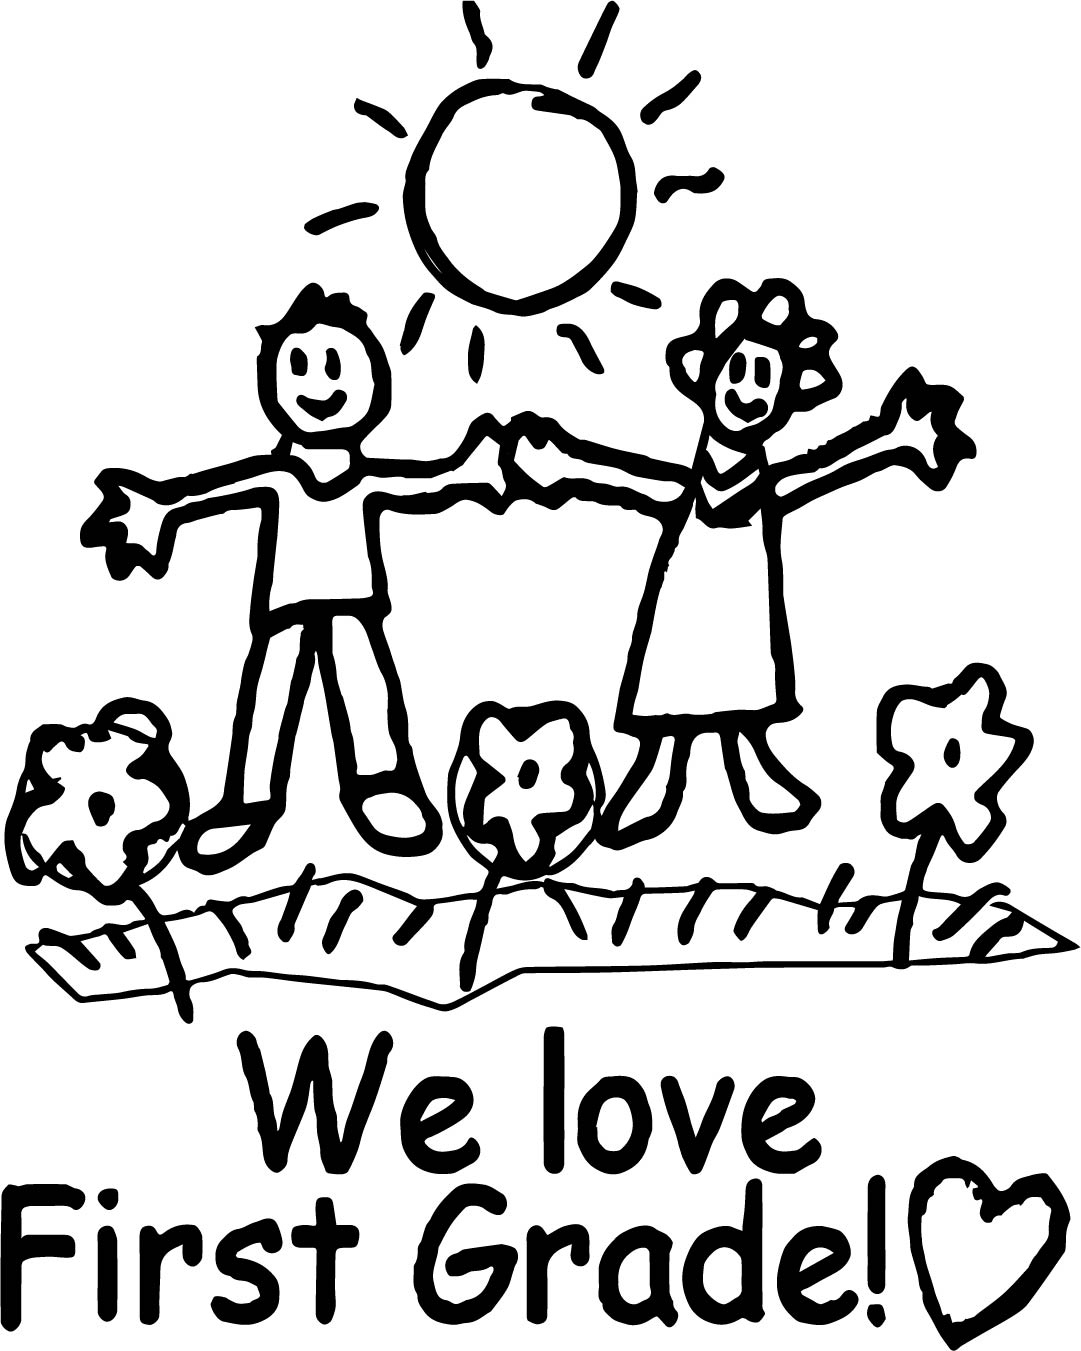 coloring sheets for grade 1 second grade coloring pages at getcoloringscom free sheets grade for 1 coloring